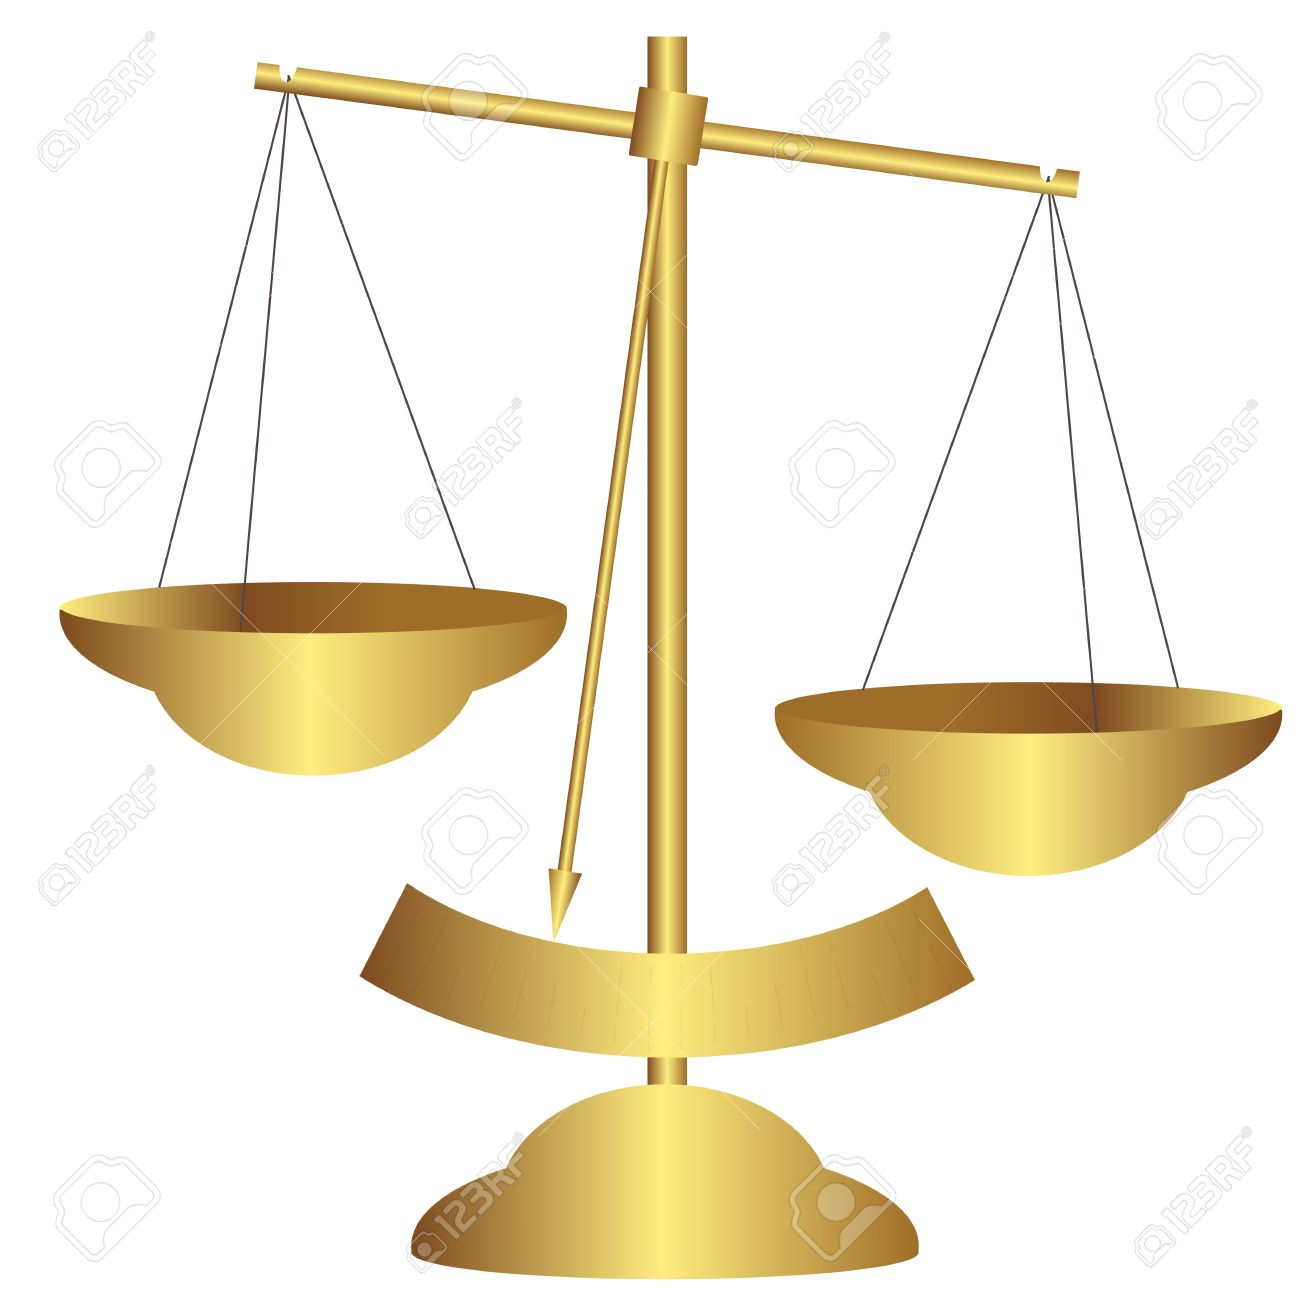 golden balance scale vector royalty free cliparts vectors and rh 123rf com  legal balance scale clipart